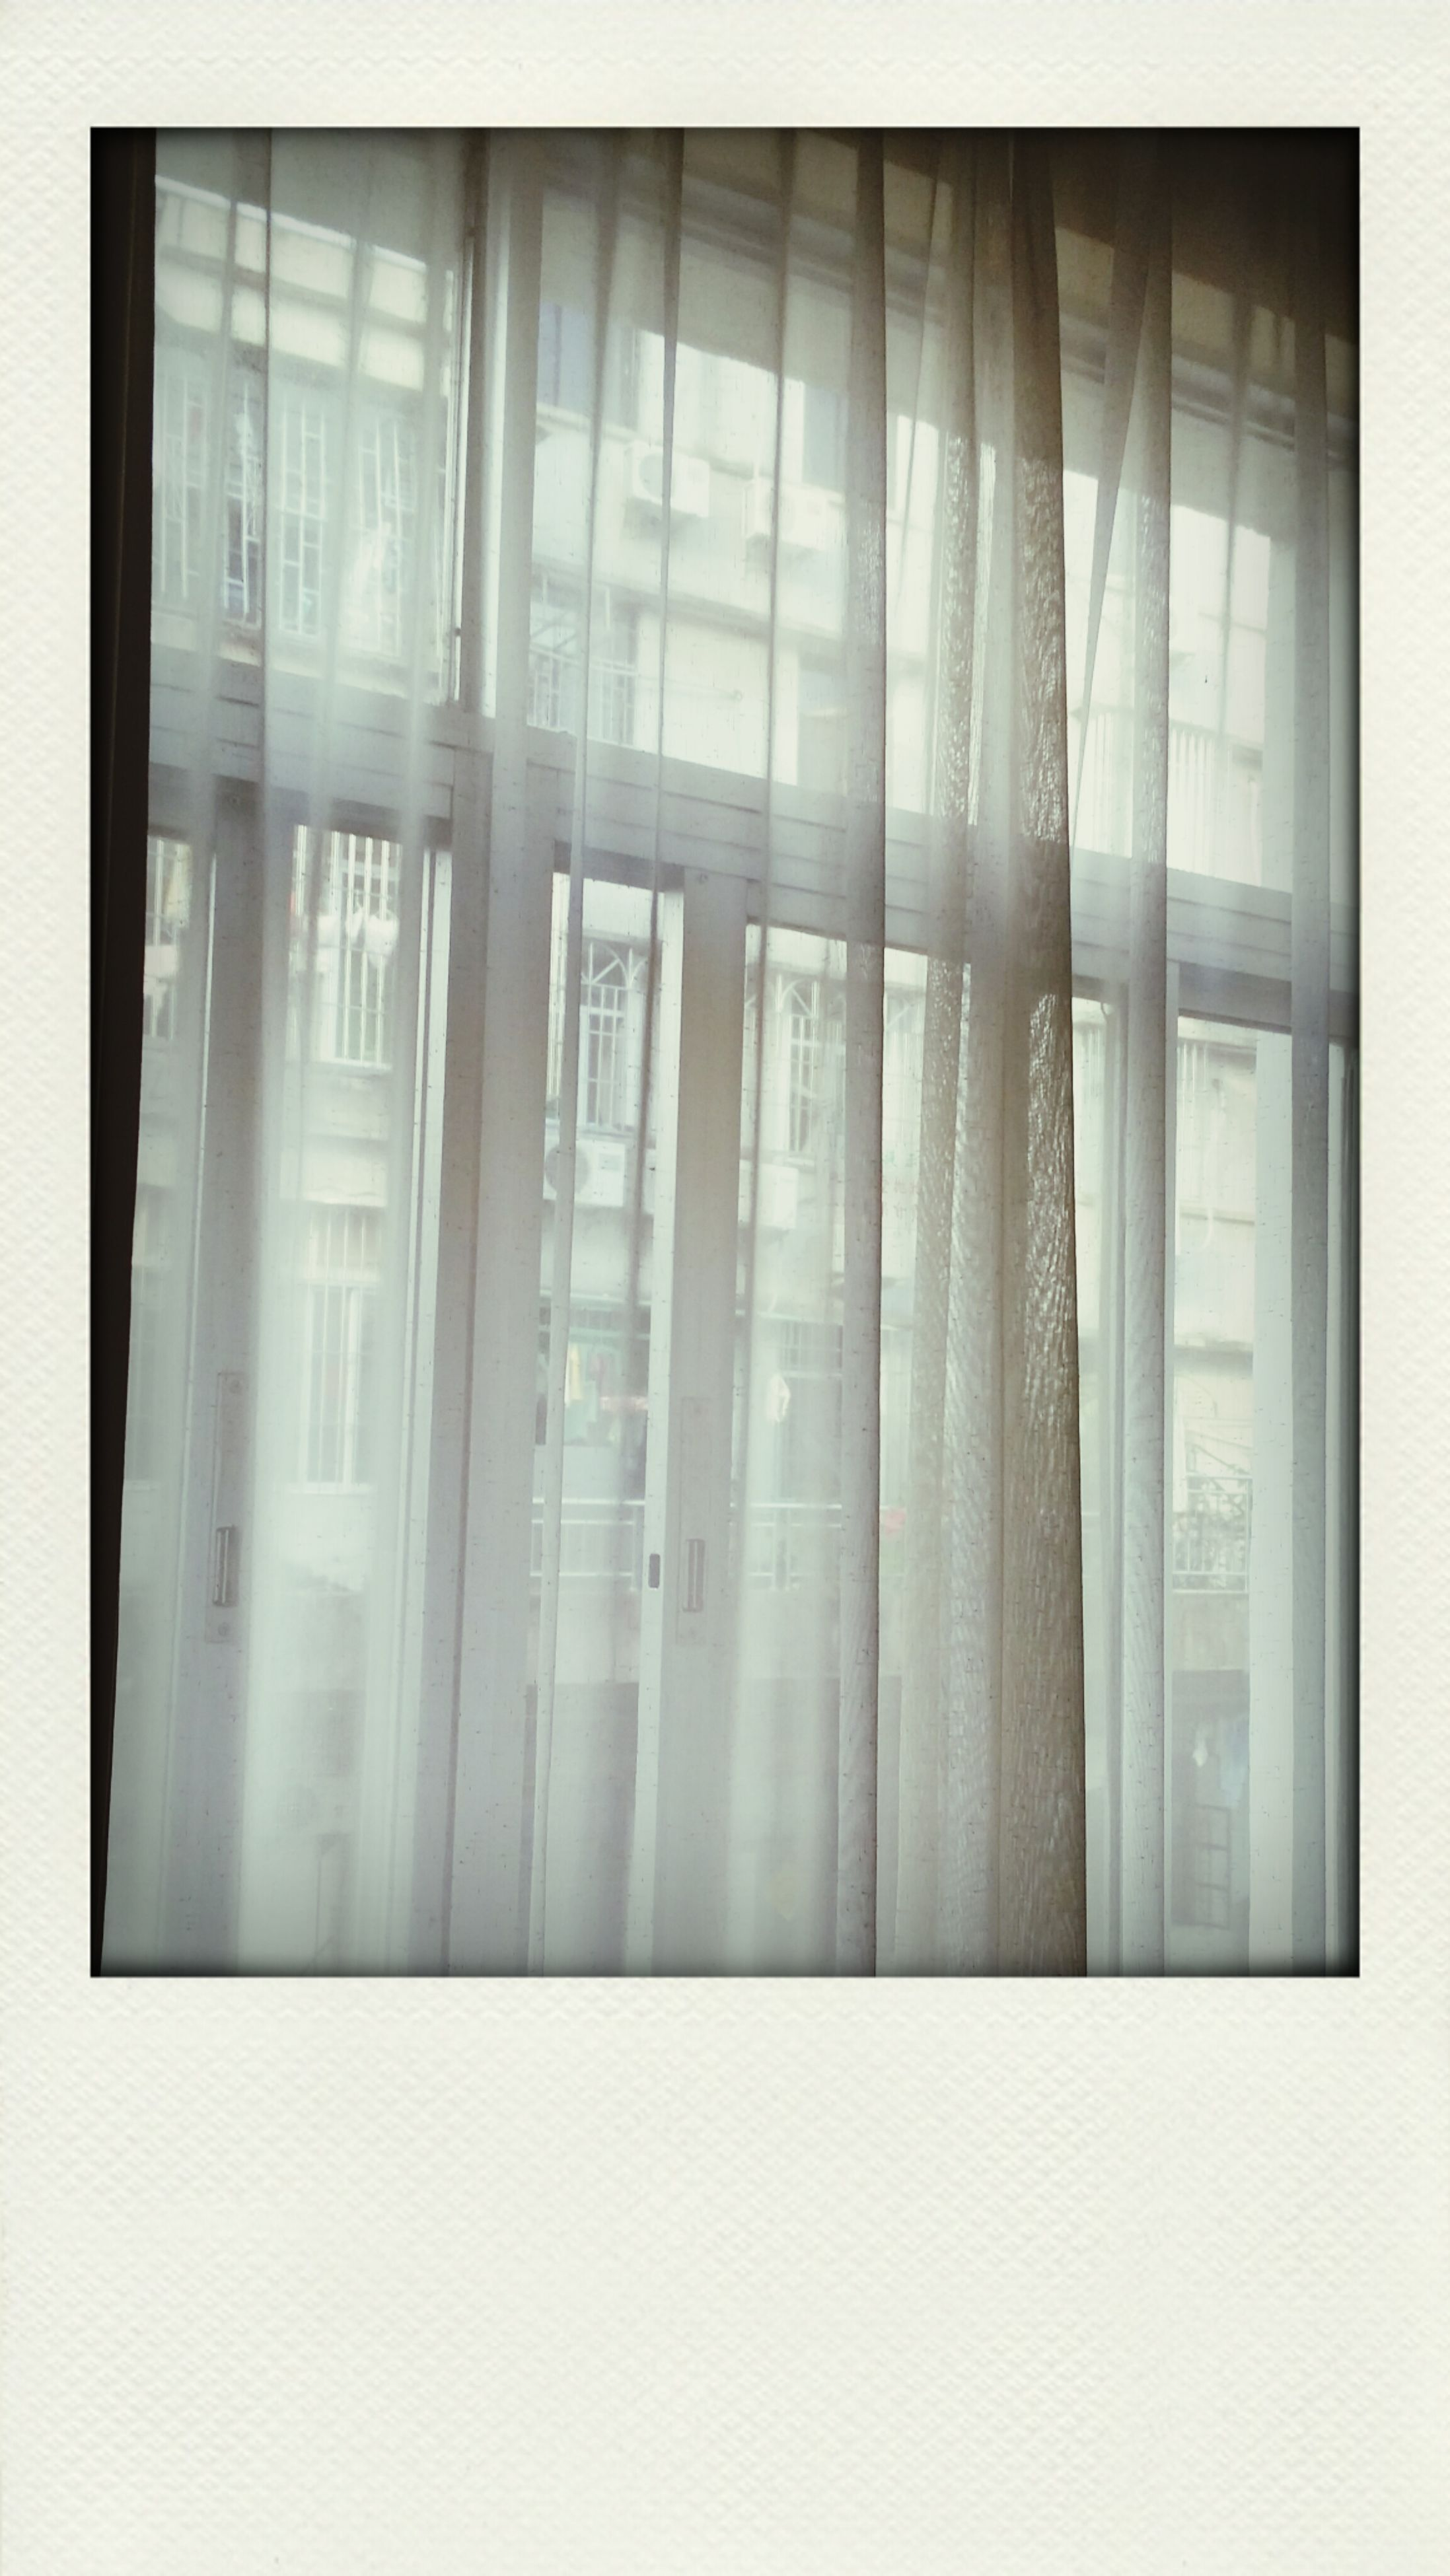 transfer print, window, indoors, auto post production filter, architecture, built structure, curtain, glass - material, transparent, closed, full frame, building exterior, backgrounds, no people, reflection, home interior, wall, door, day, wall - building feature